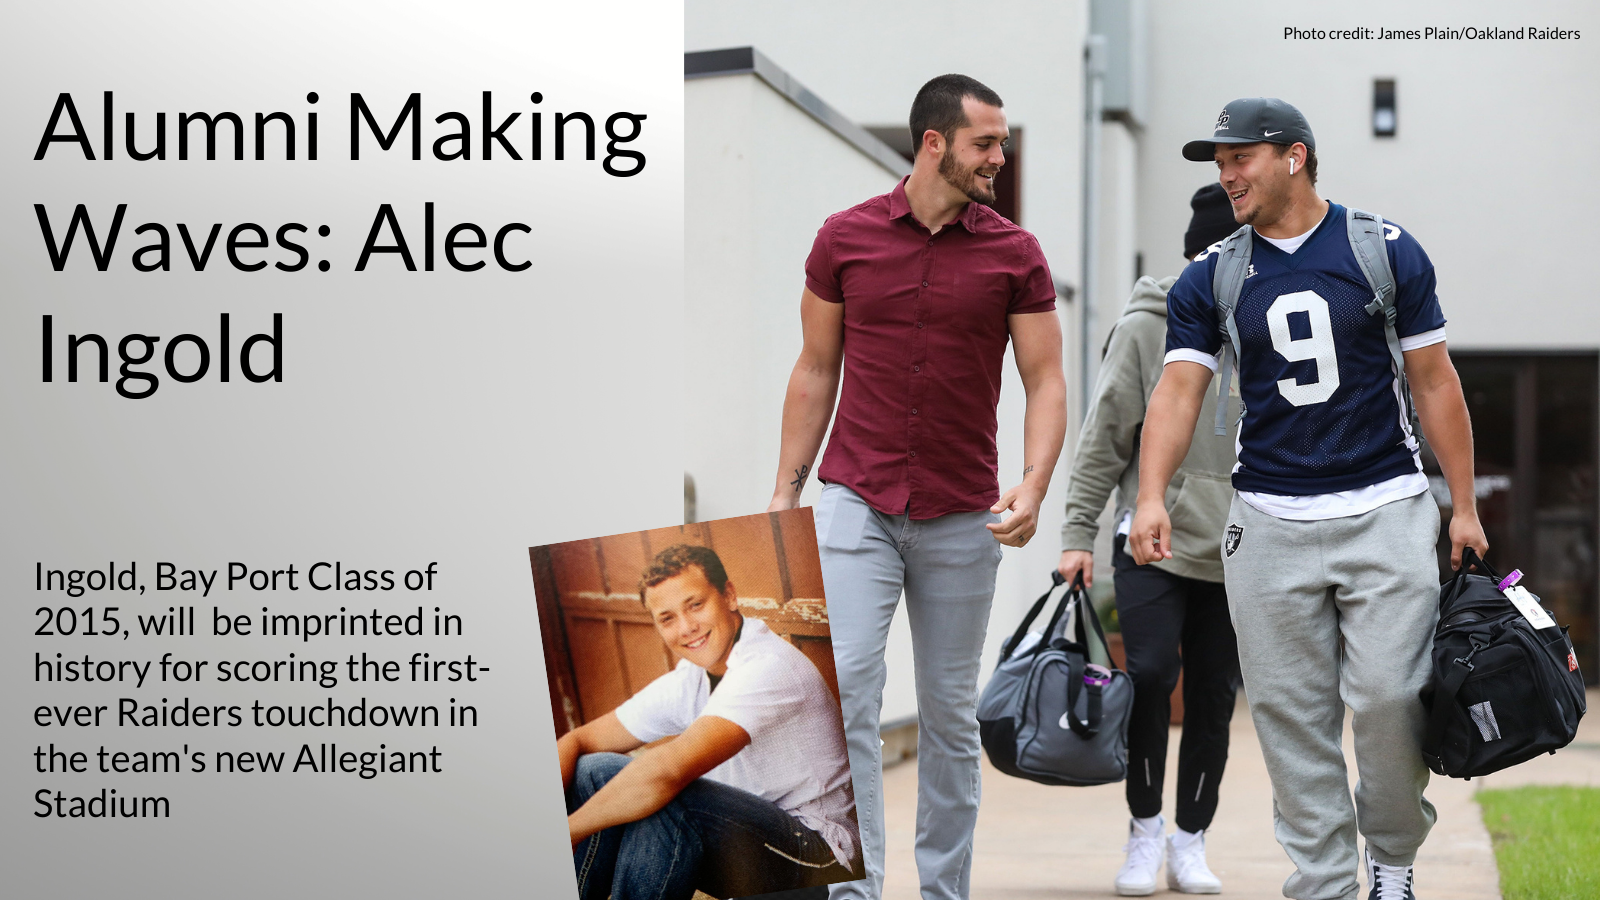 Alumni Making Waves: Alec Ingold